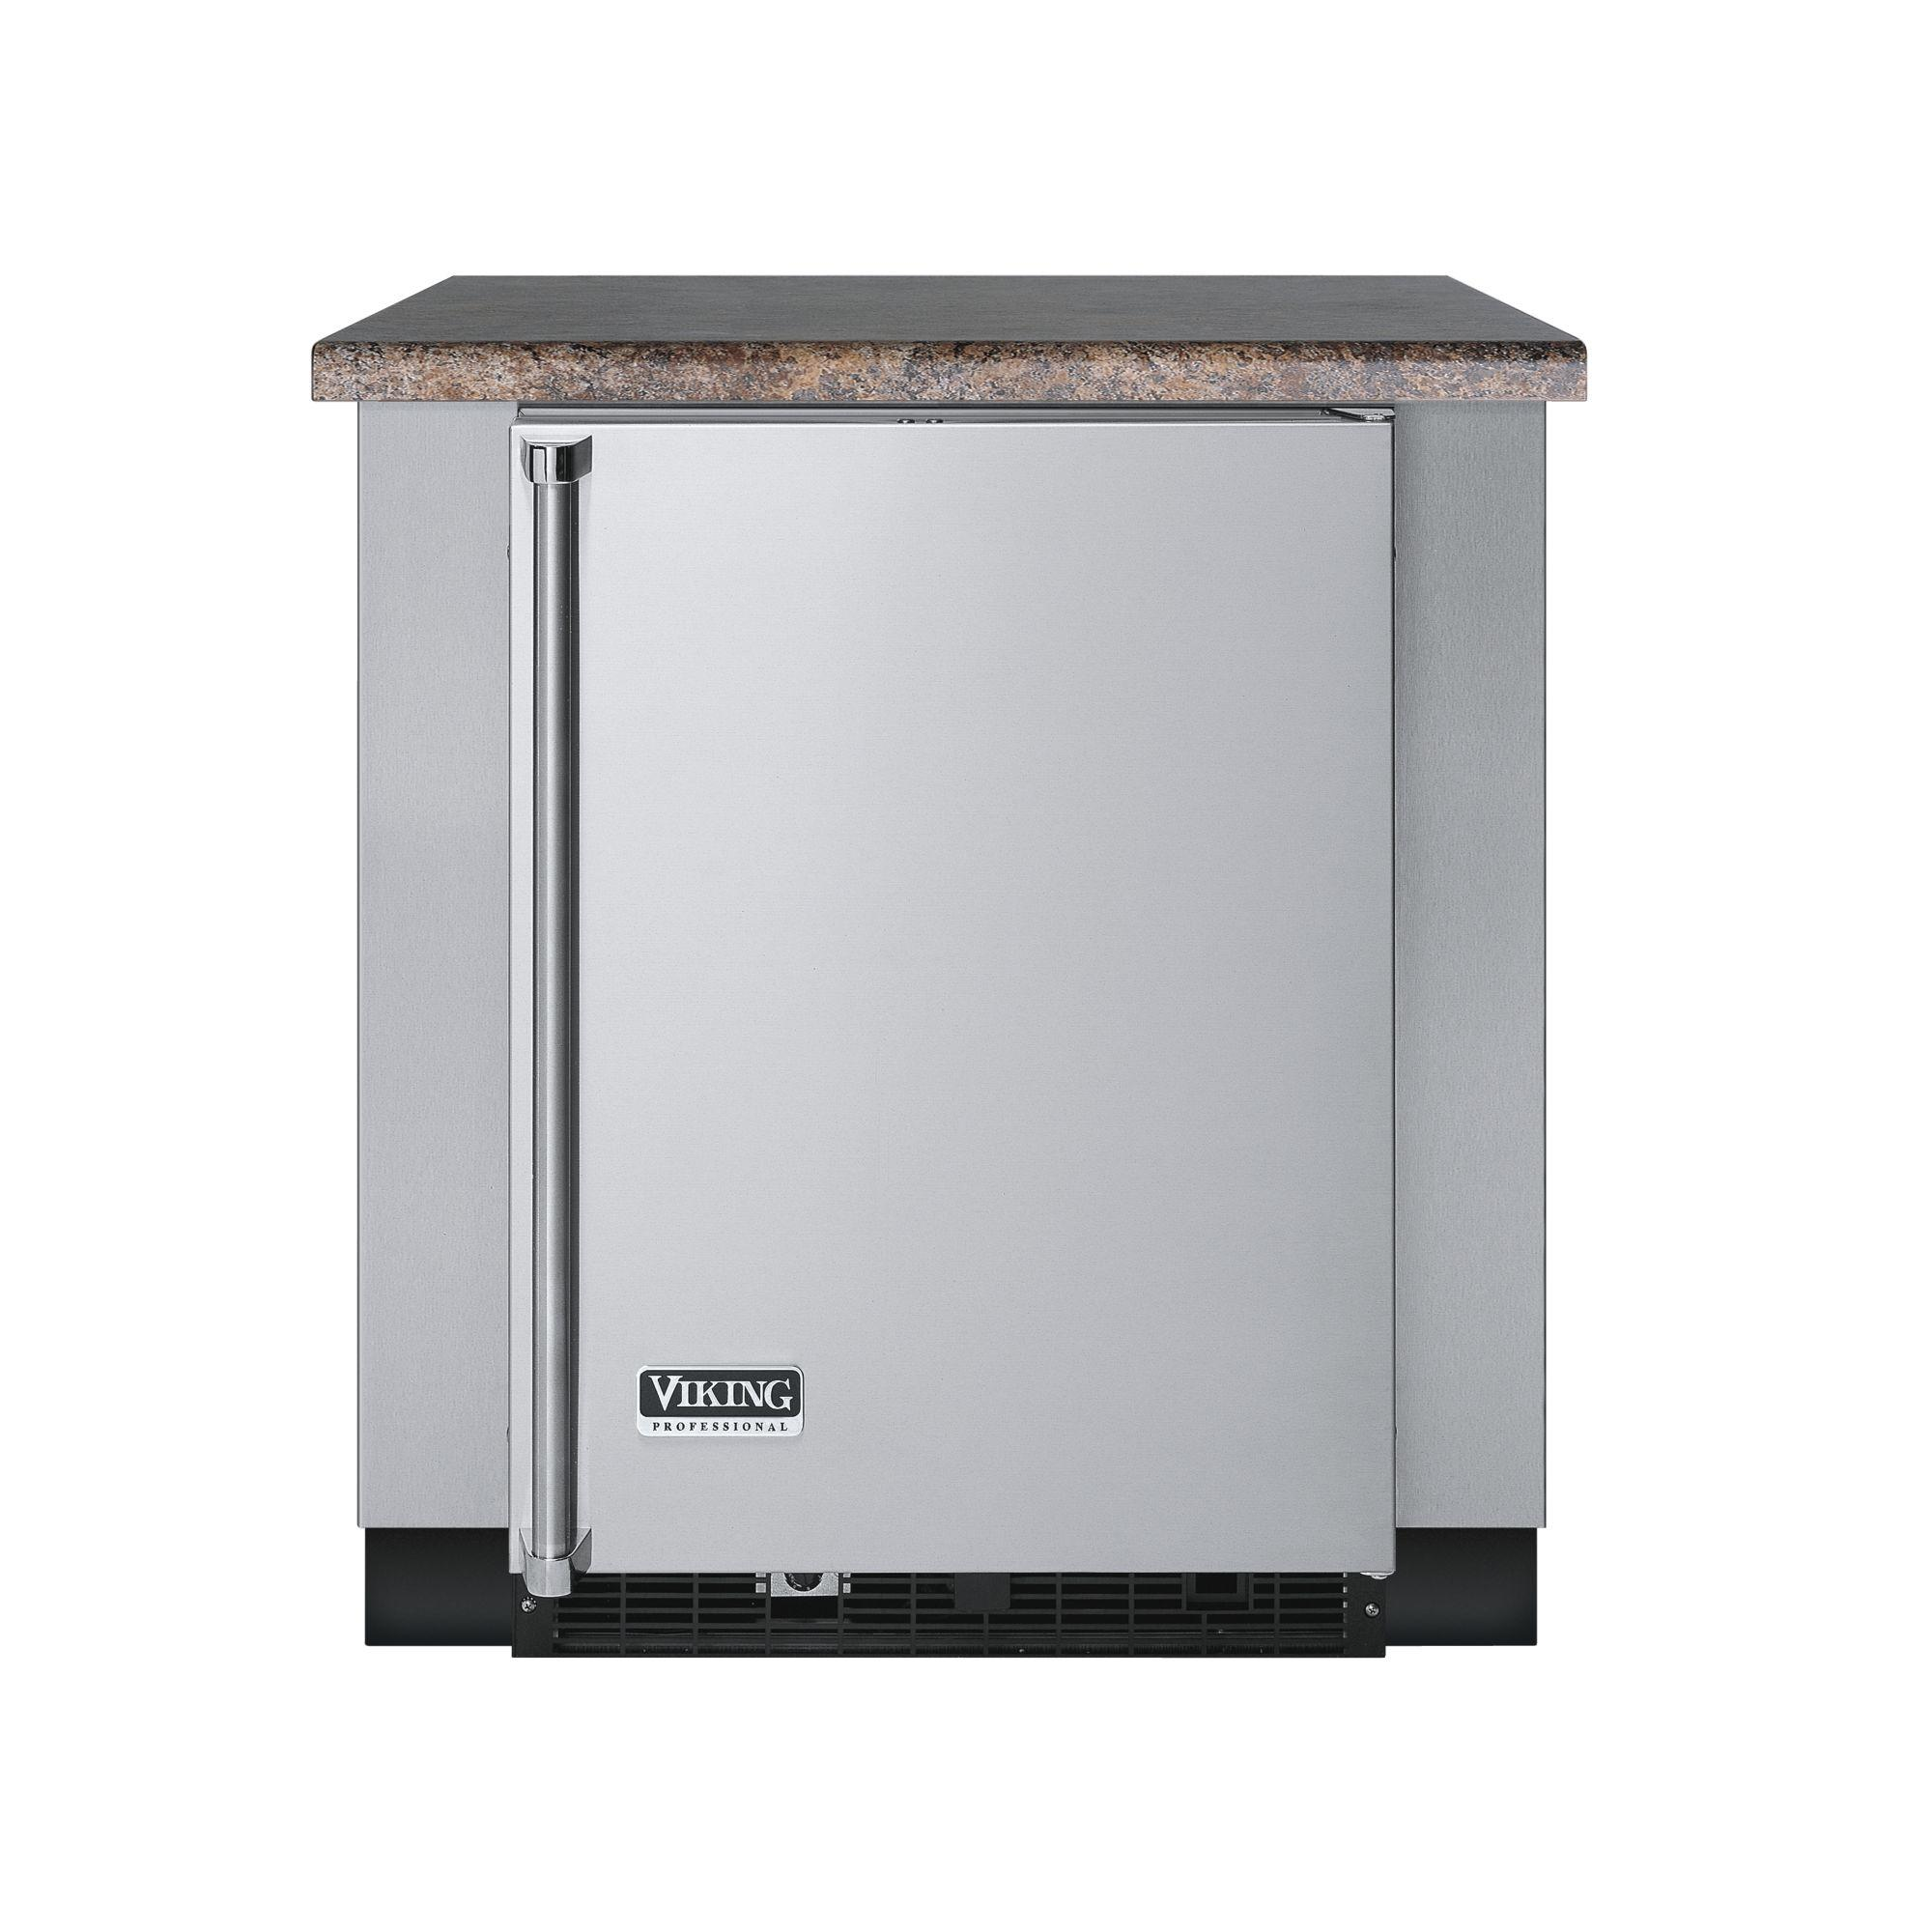 Vuro3200ss viking vuro3200ss outdoor series for Viking outdoor cabinets